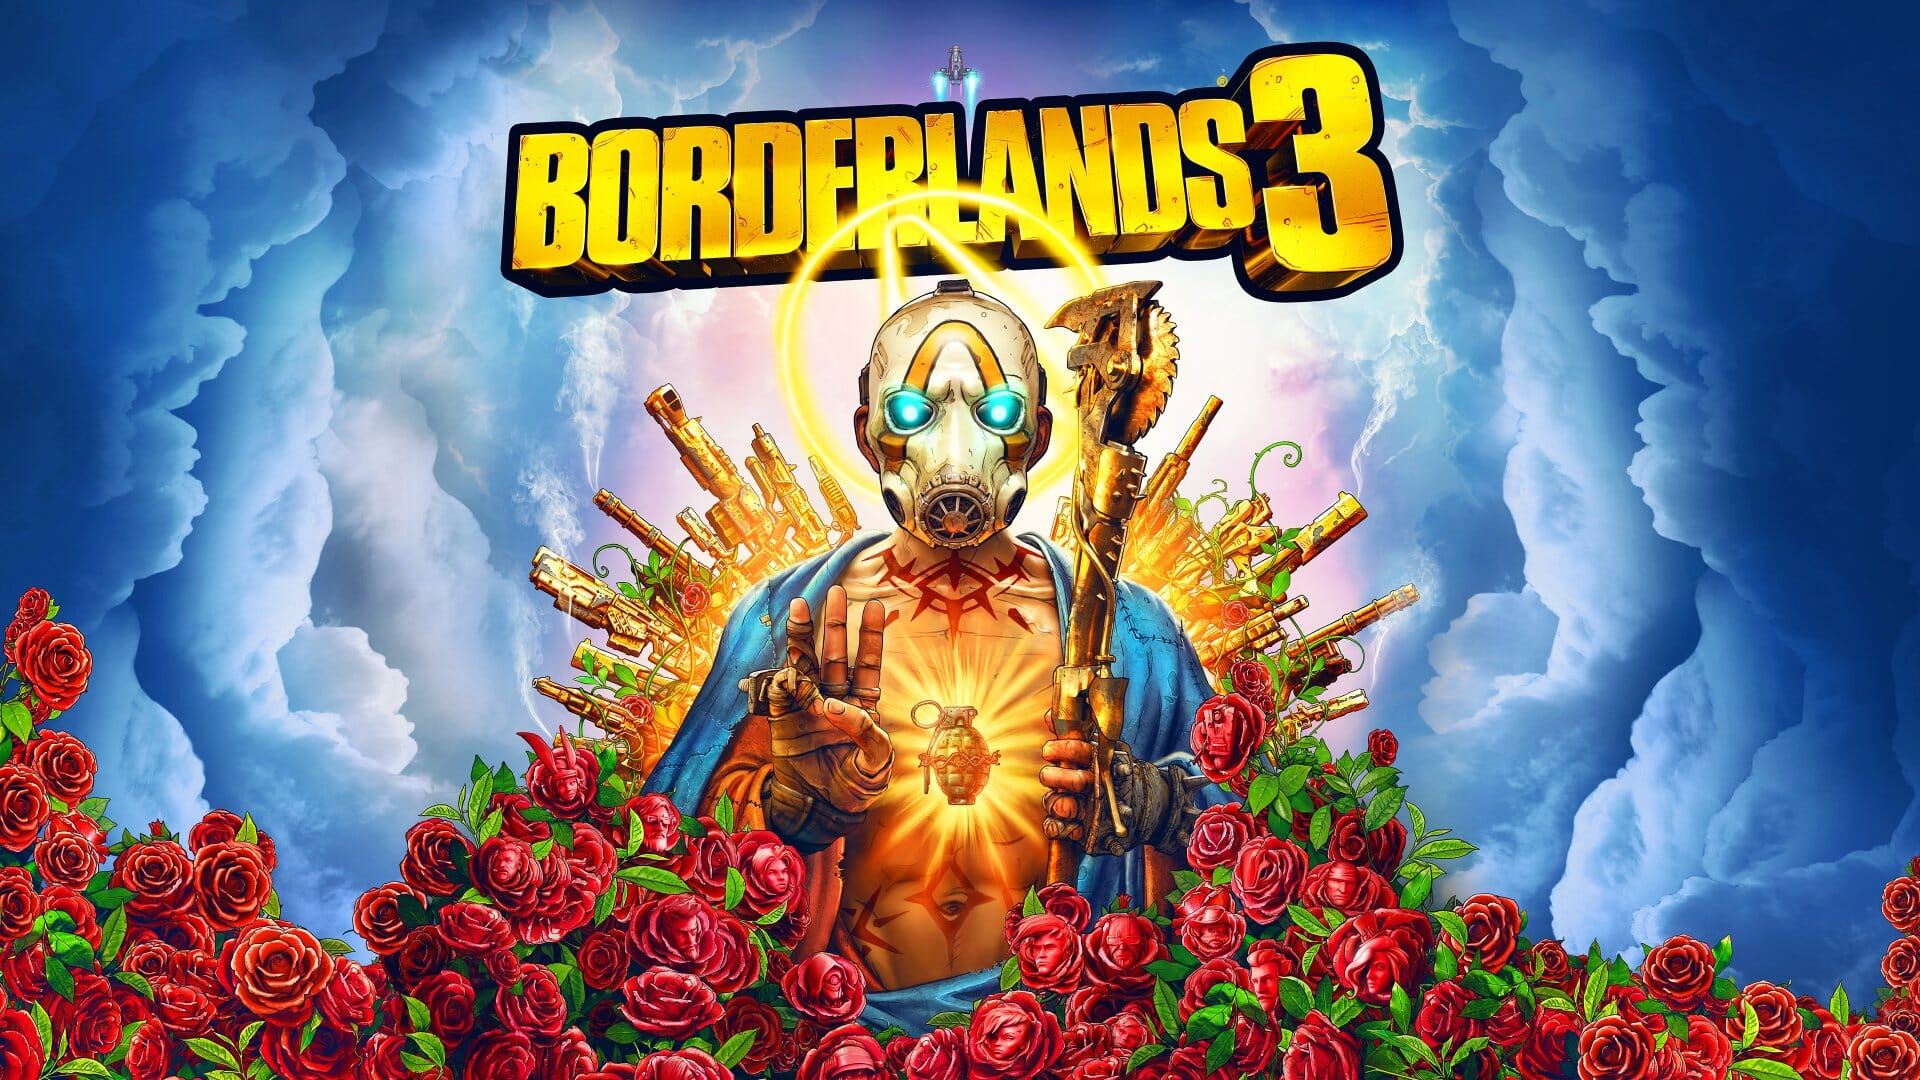 Descargar Borderlands 3 Deluxe Edition PC Español